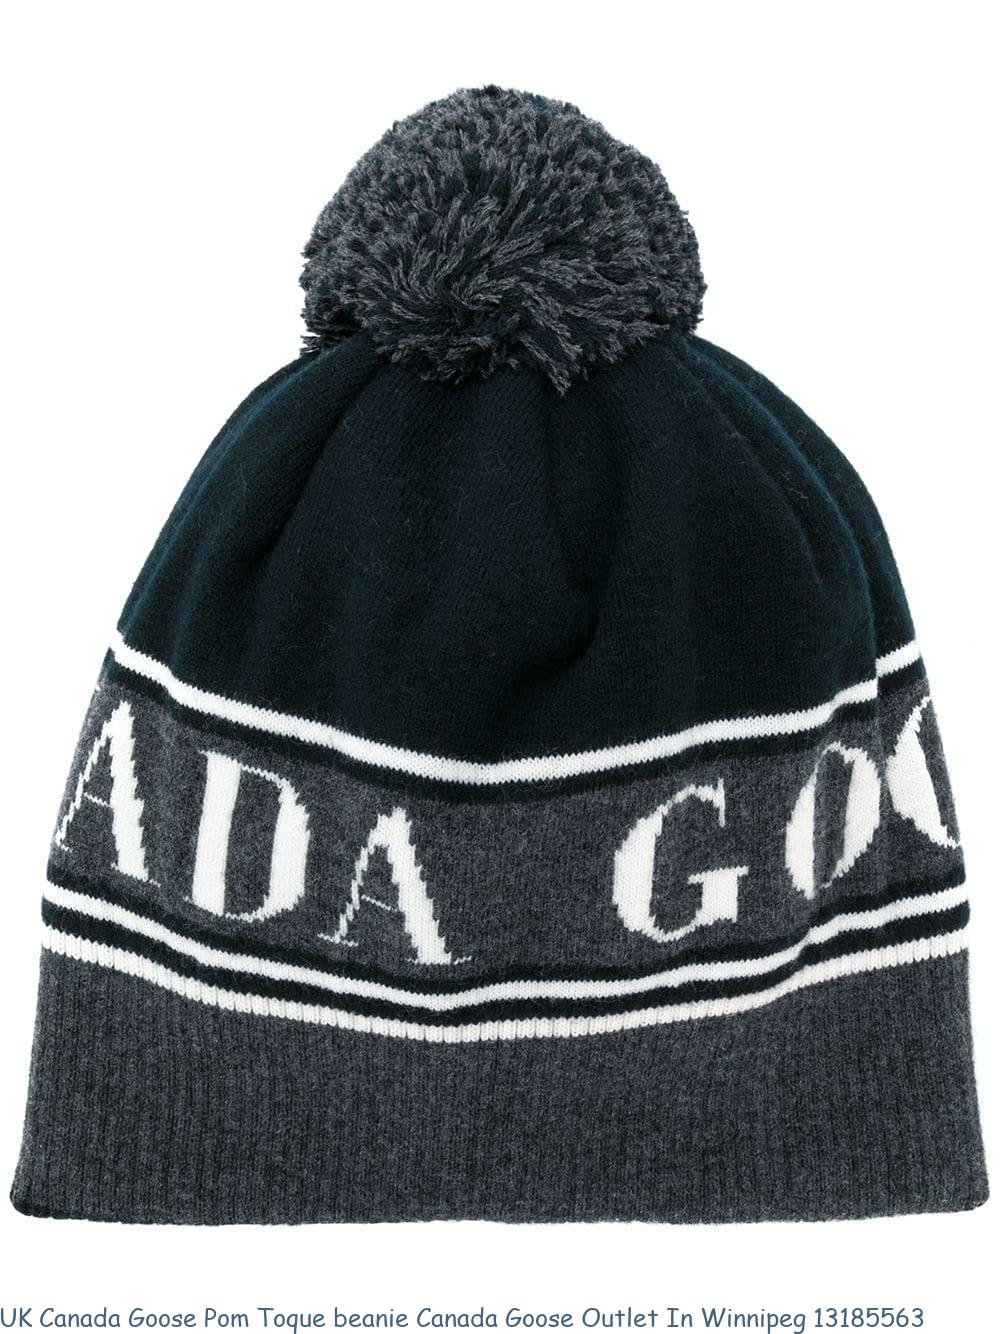 776d962a352 UK Canada Goose Pom Toque beanie Canada Goose Outlet In Winnipeg 13185563 –  Canada Goose On Sale Outlet Steep Cheap Clearance